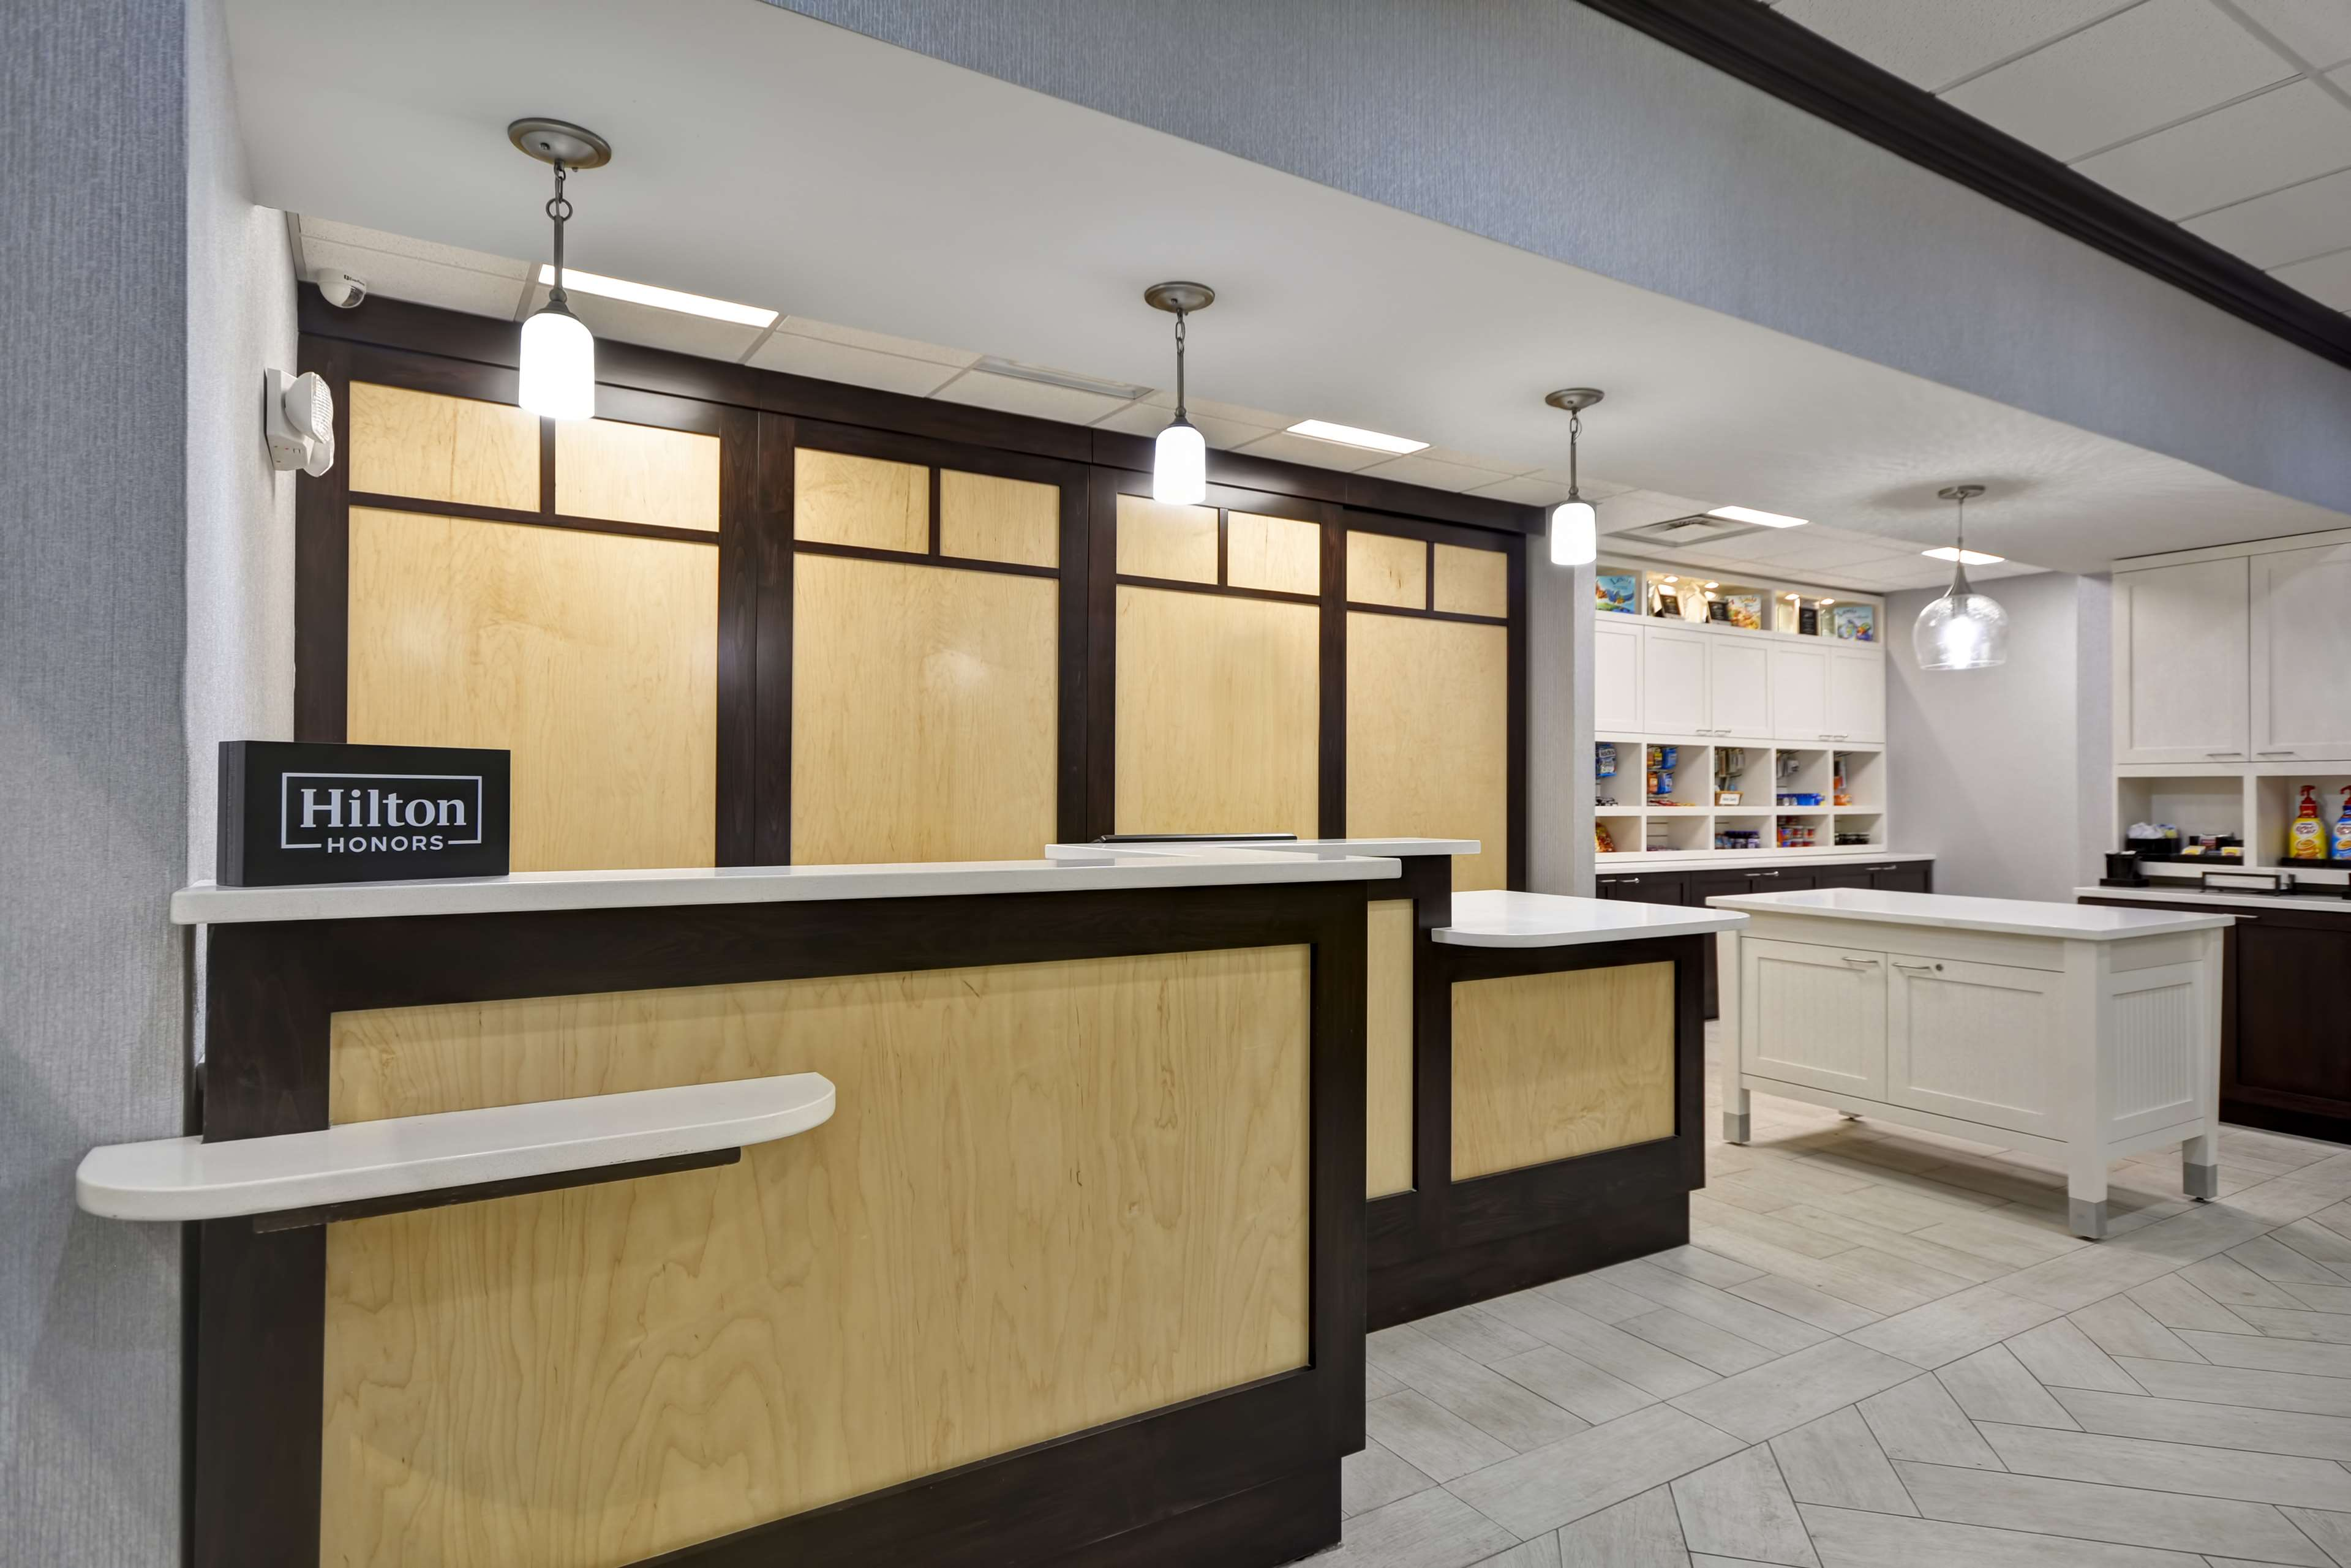 Homewood Suites by Hilton Wilmington/Mayfaire, NC image 3